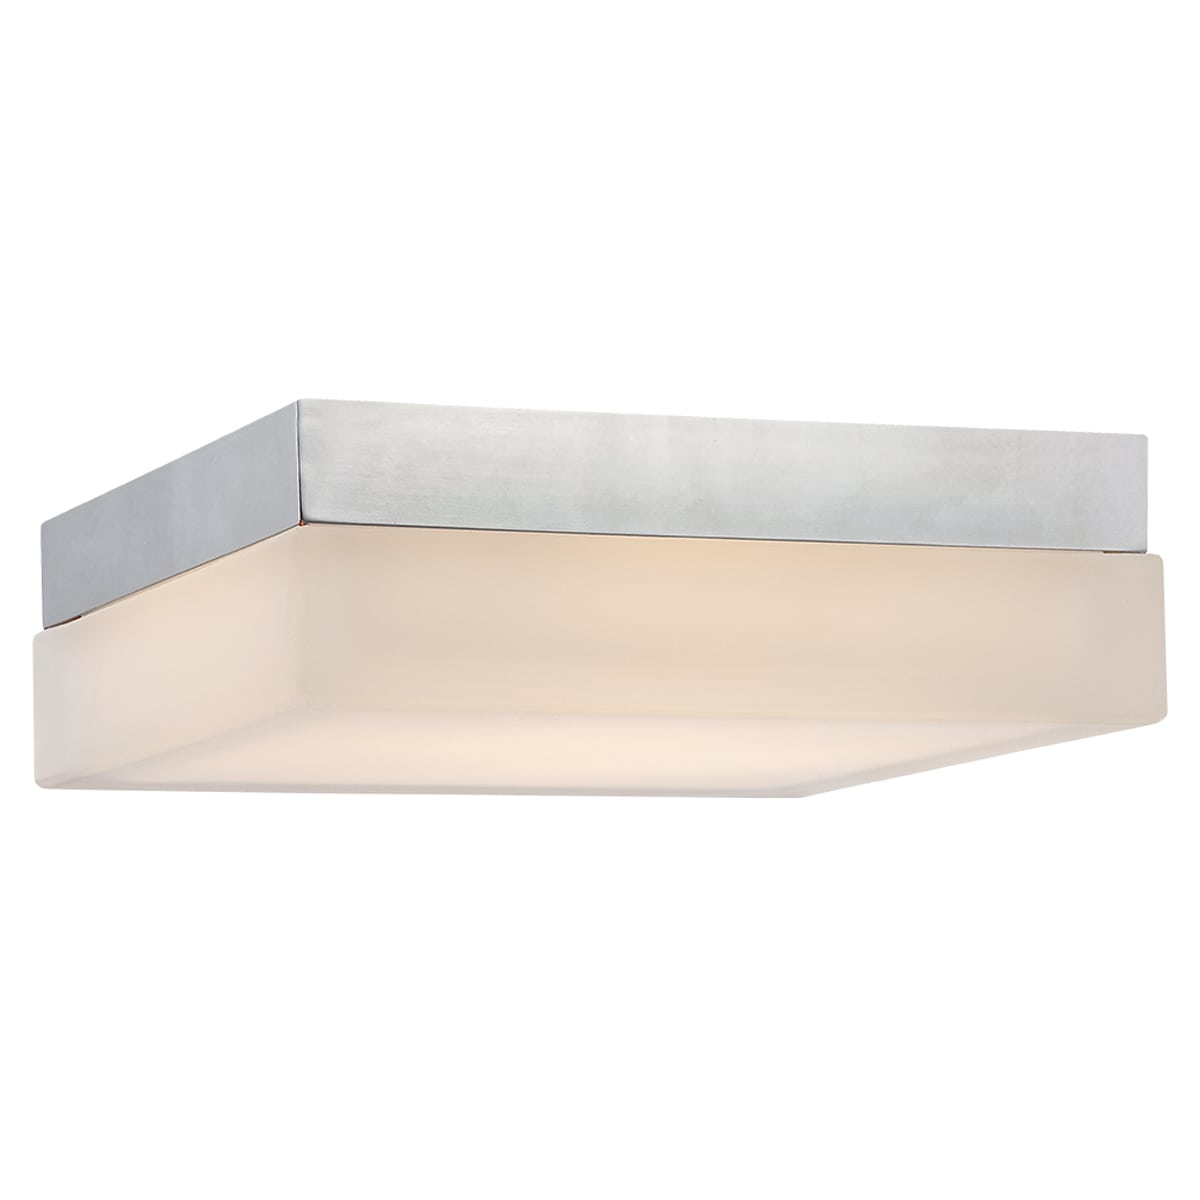 Wac lighting fm 4009 bz bronze dice convertible single light 9 wide wac lighting fm 4009 bz bronze dice convertible single light 9 wide integrated led flush mount square ceiling fixture wall sconce lightingdirect arubaitofo Image collections